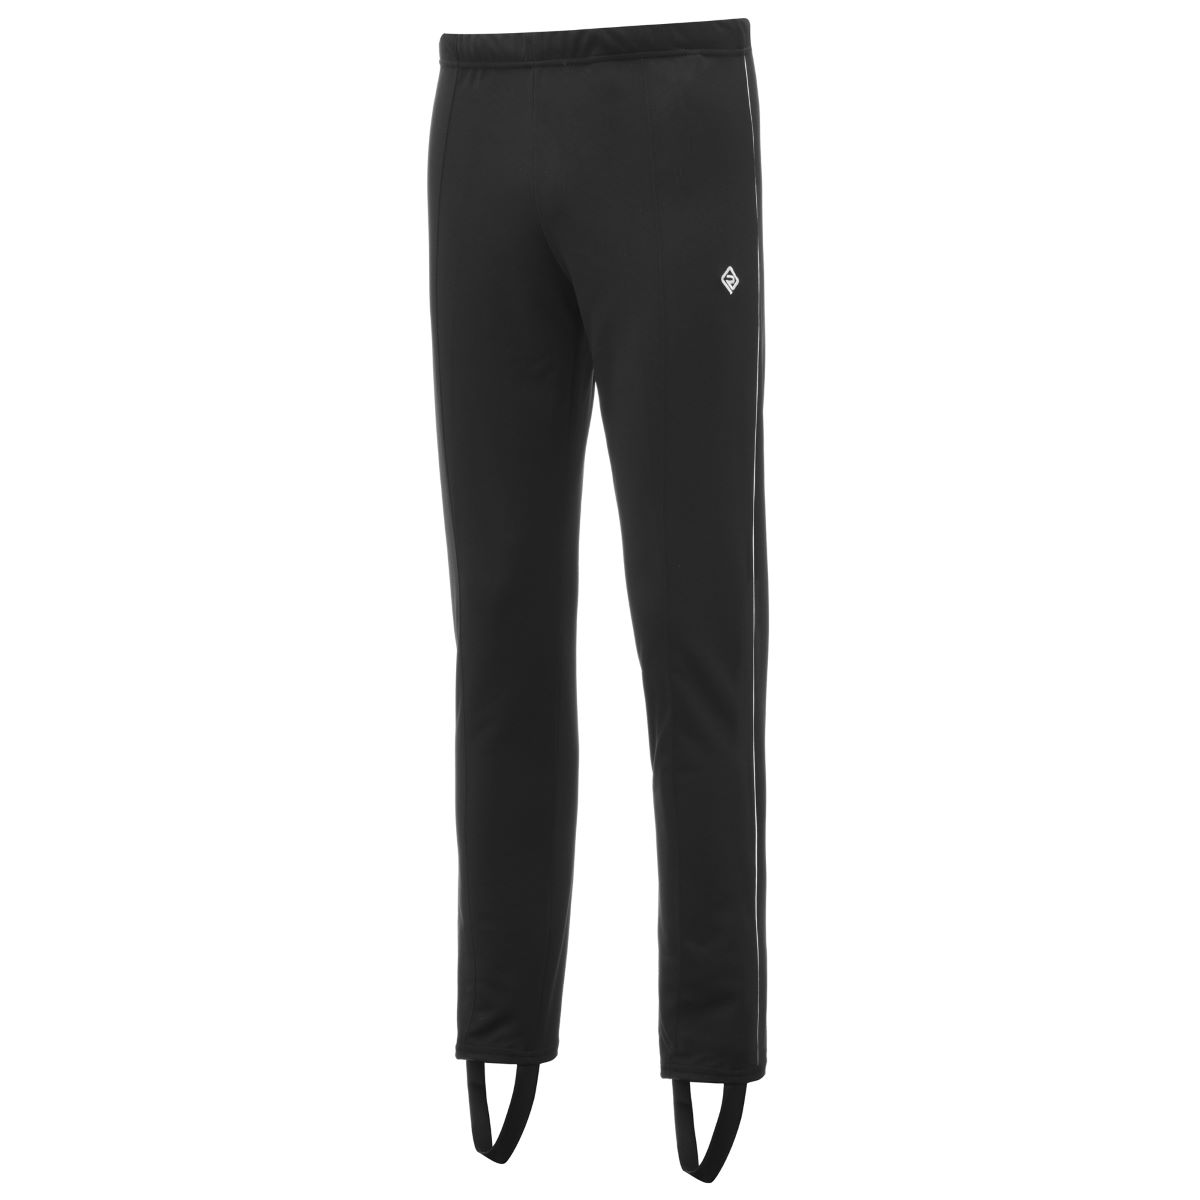 Image of Collant de course Ronhill Classic - XL Noir/Blanc | Joggings